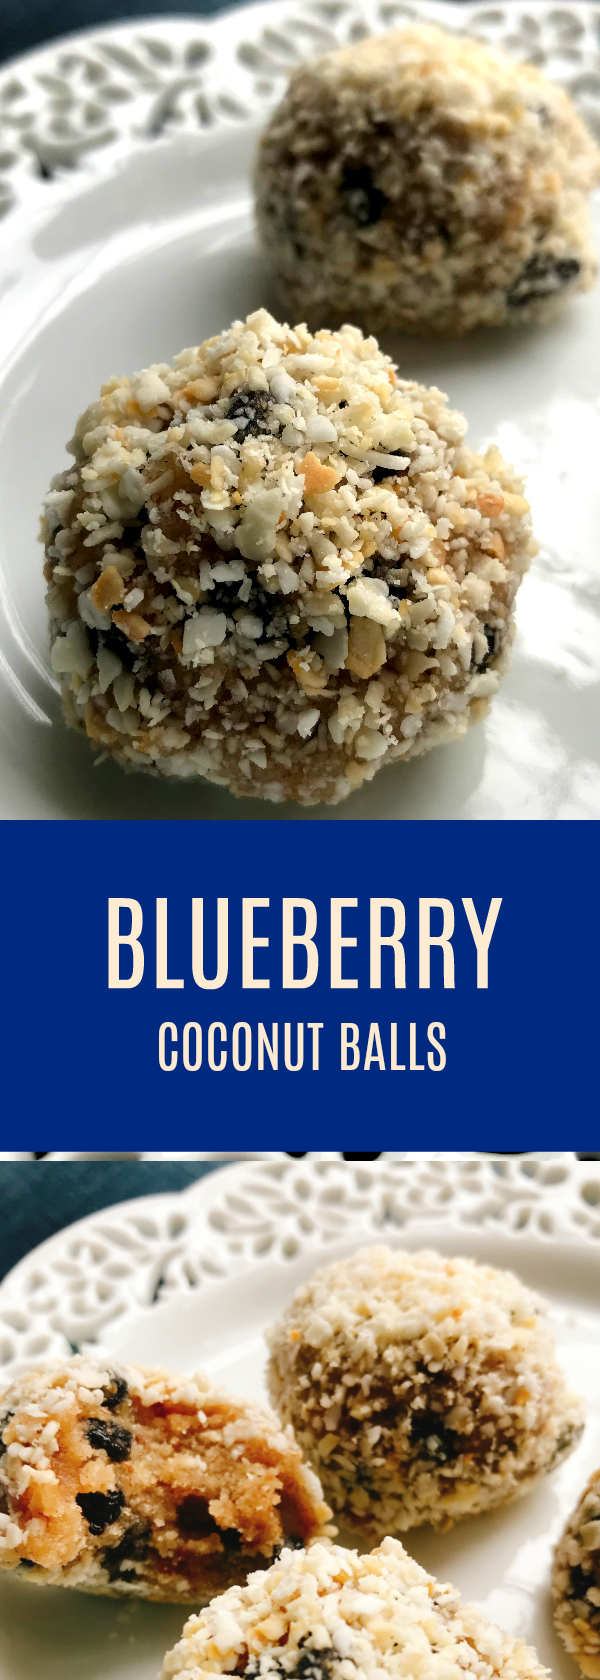 These Delicious Healthy Snack Balls Are Gluten, Nut and Dairy Free! Paleo and SCD